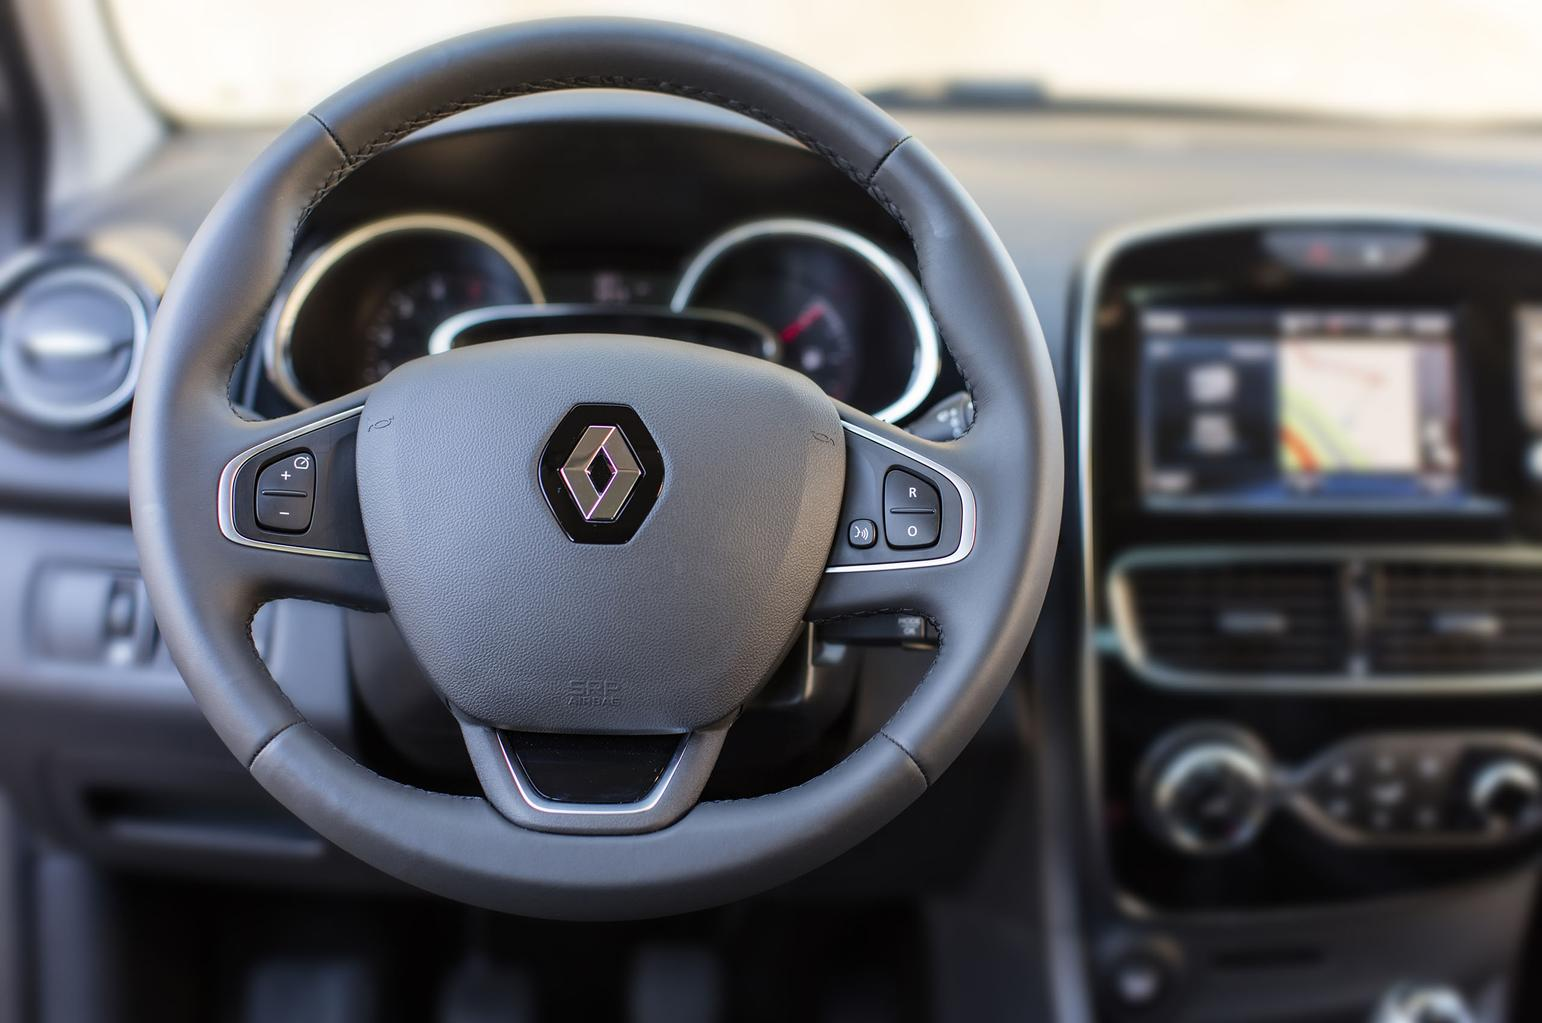 2016 Renault Clio dCi 110 review